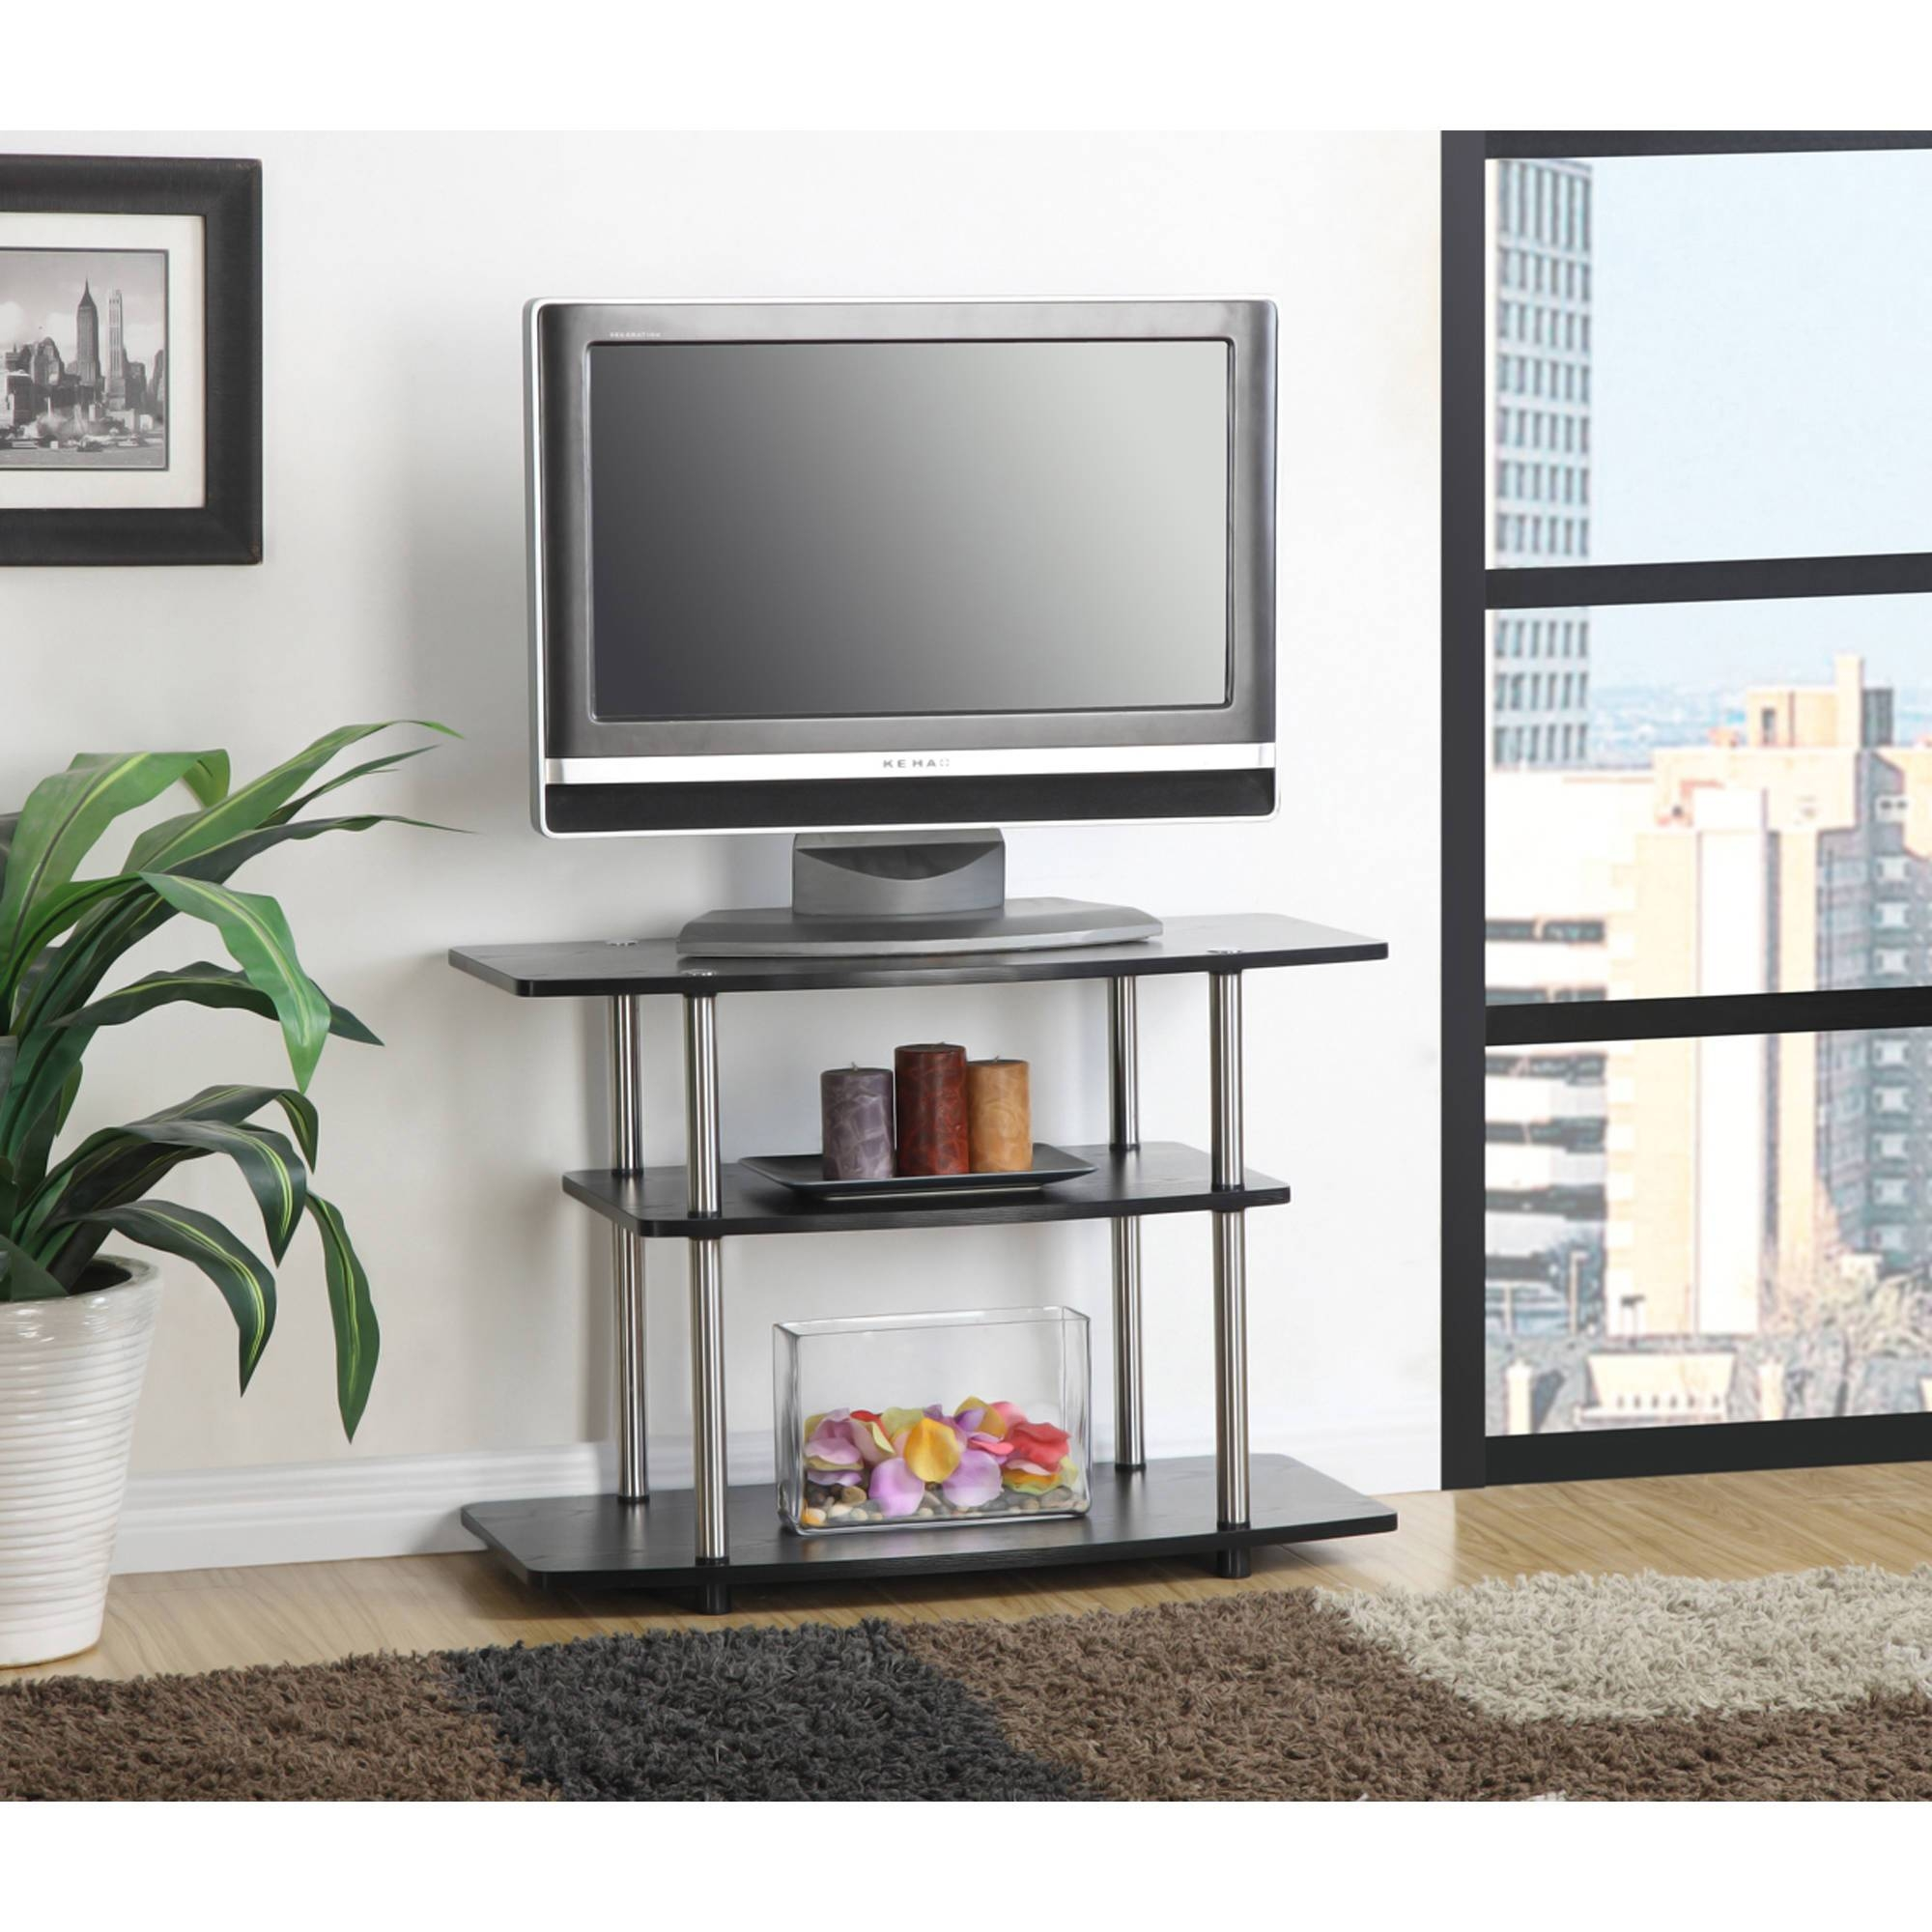 Bedrooms : Best 24 Inch Tv 32 Inch Flat Screen Tv Buy Flat Screen For 24